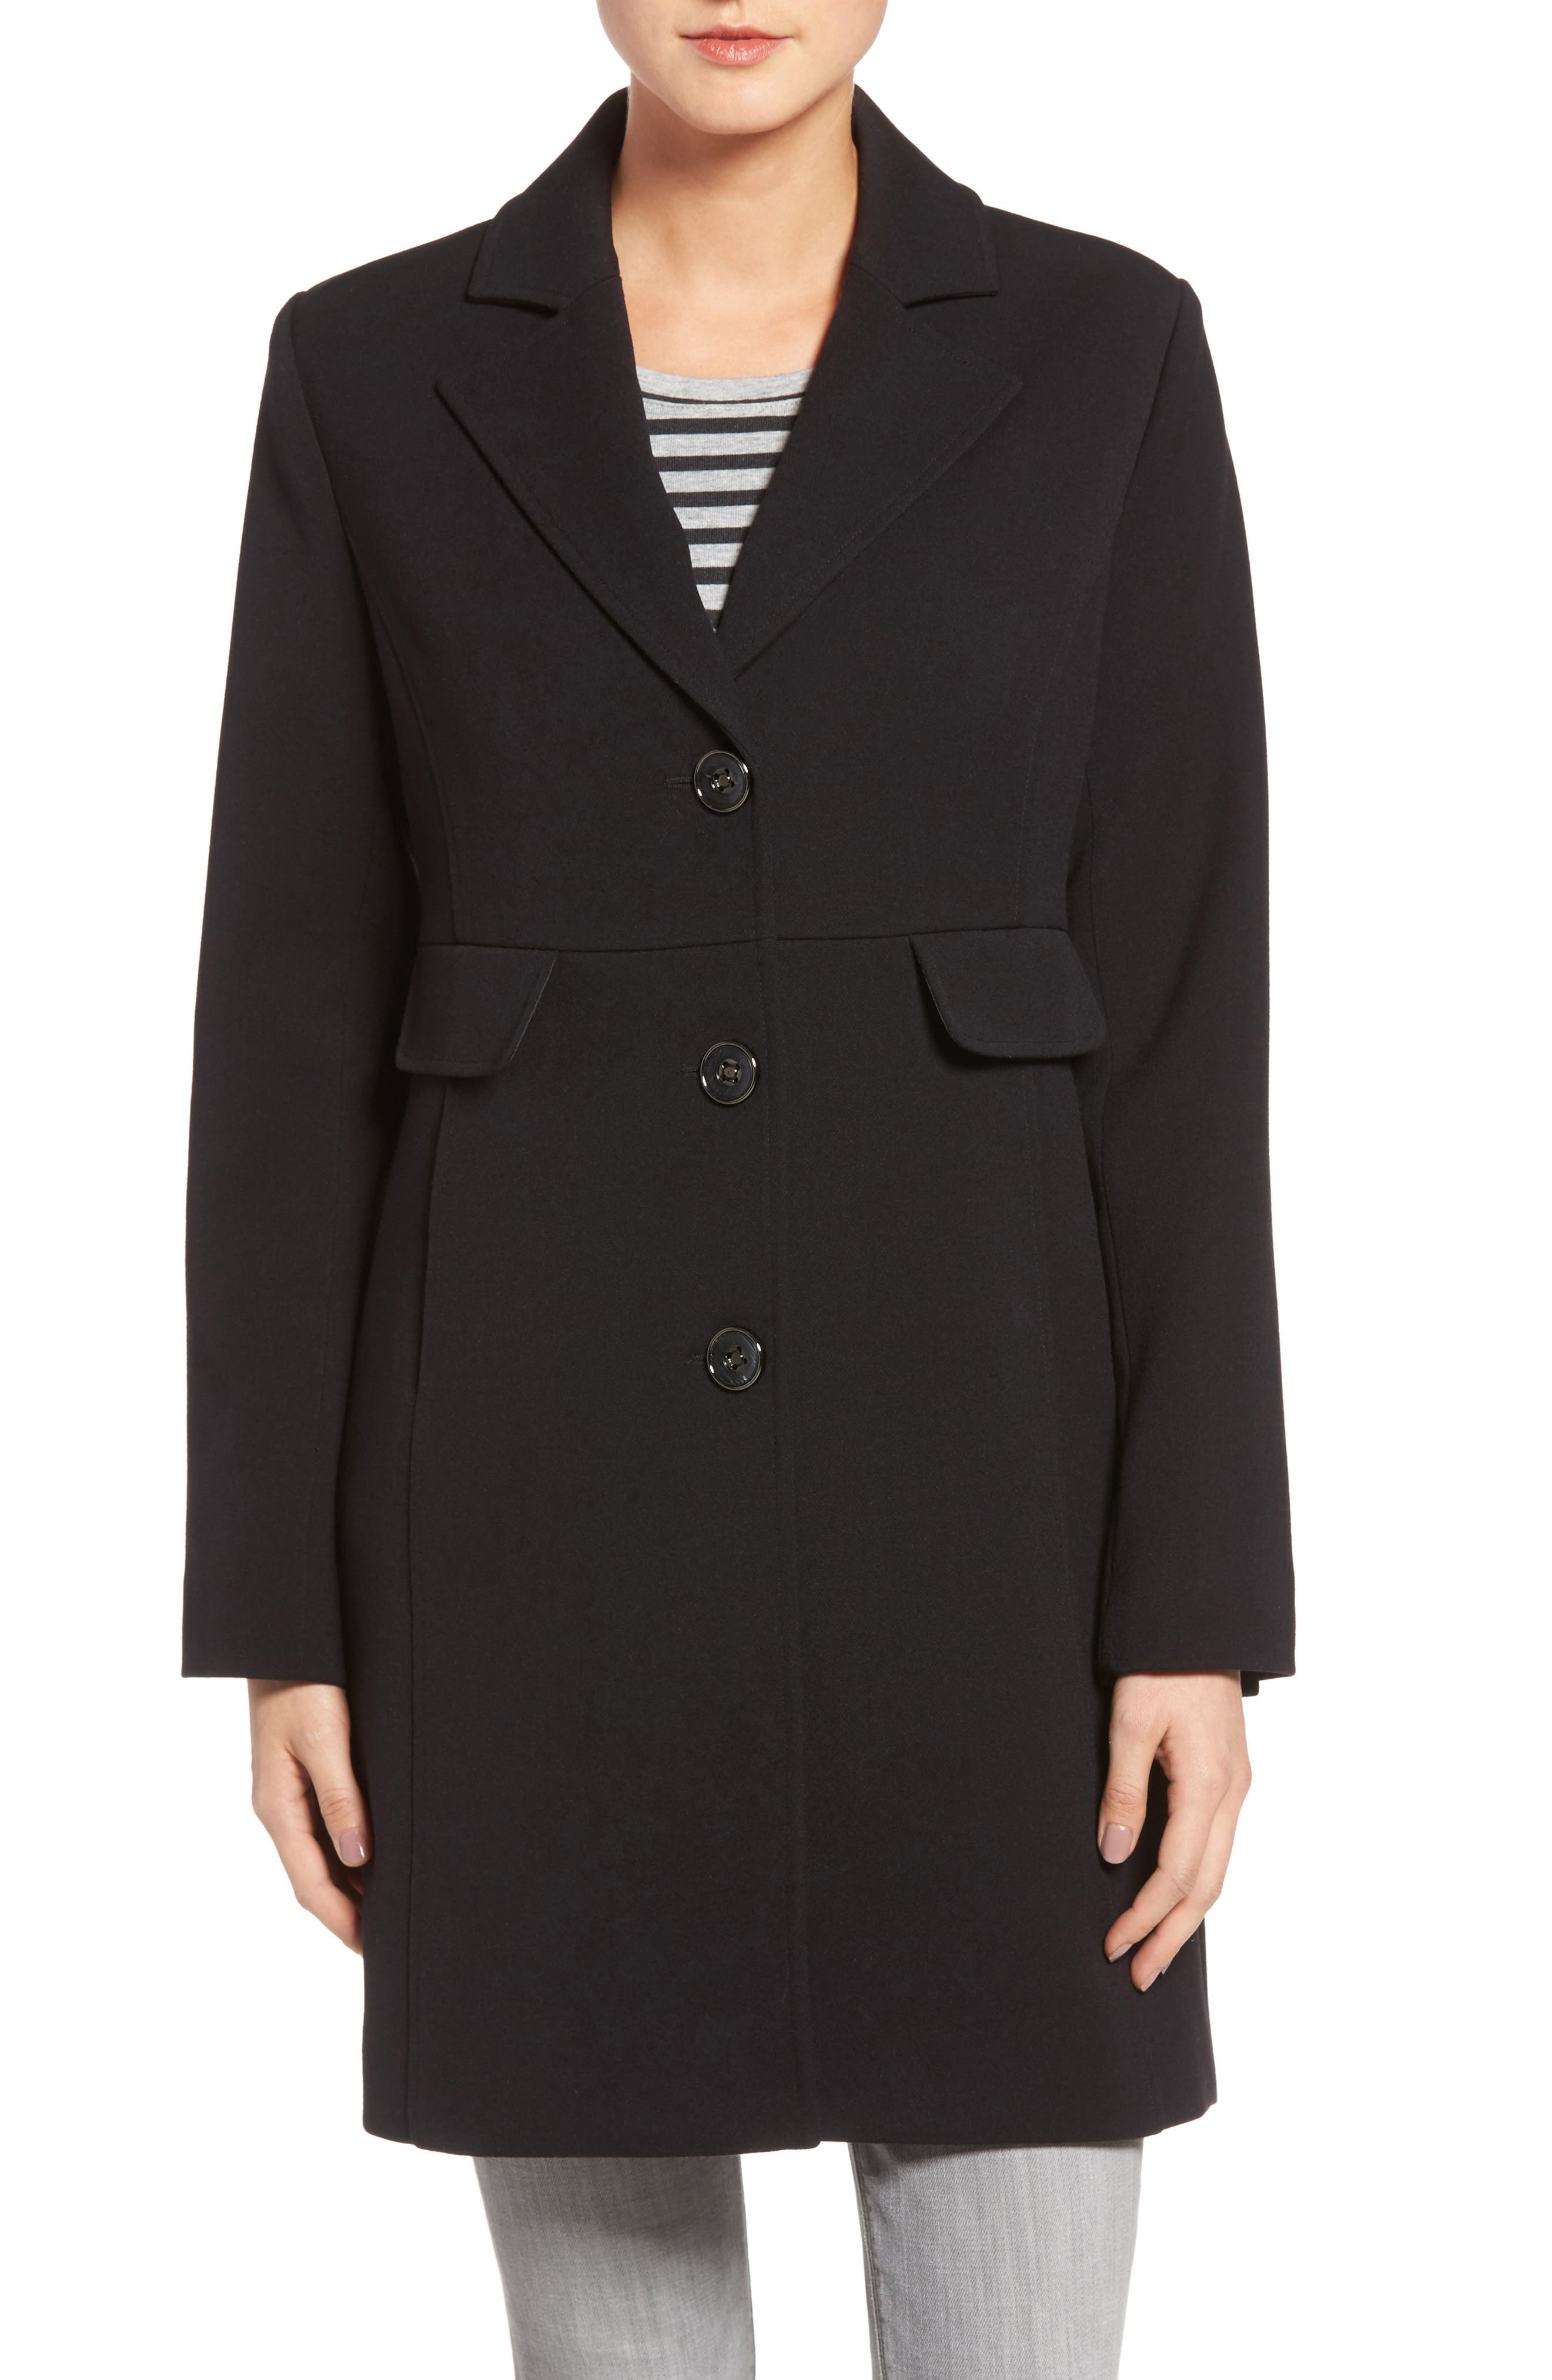 Alternate Image 1 Selected - Kenneth Cole A-Line Ponte Coat (Regular & Petite)